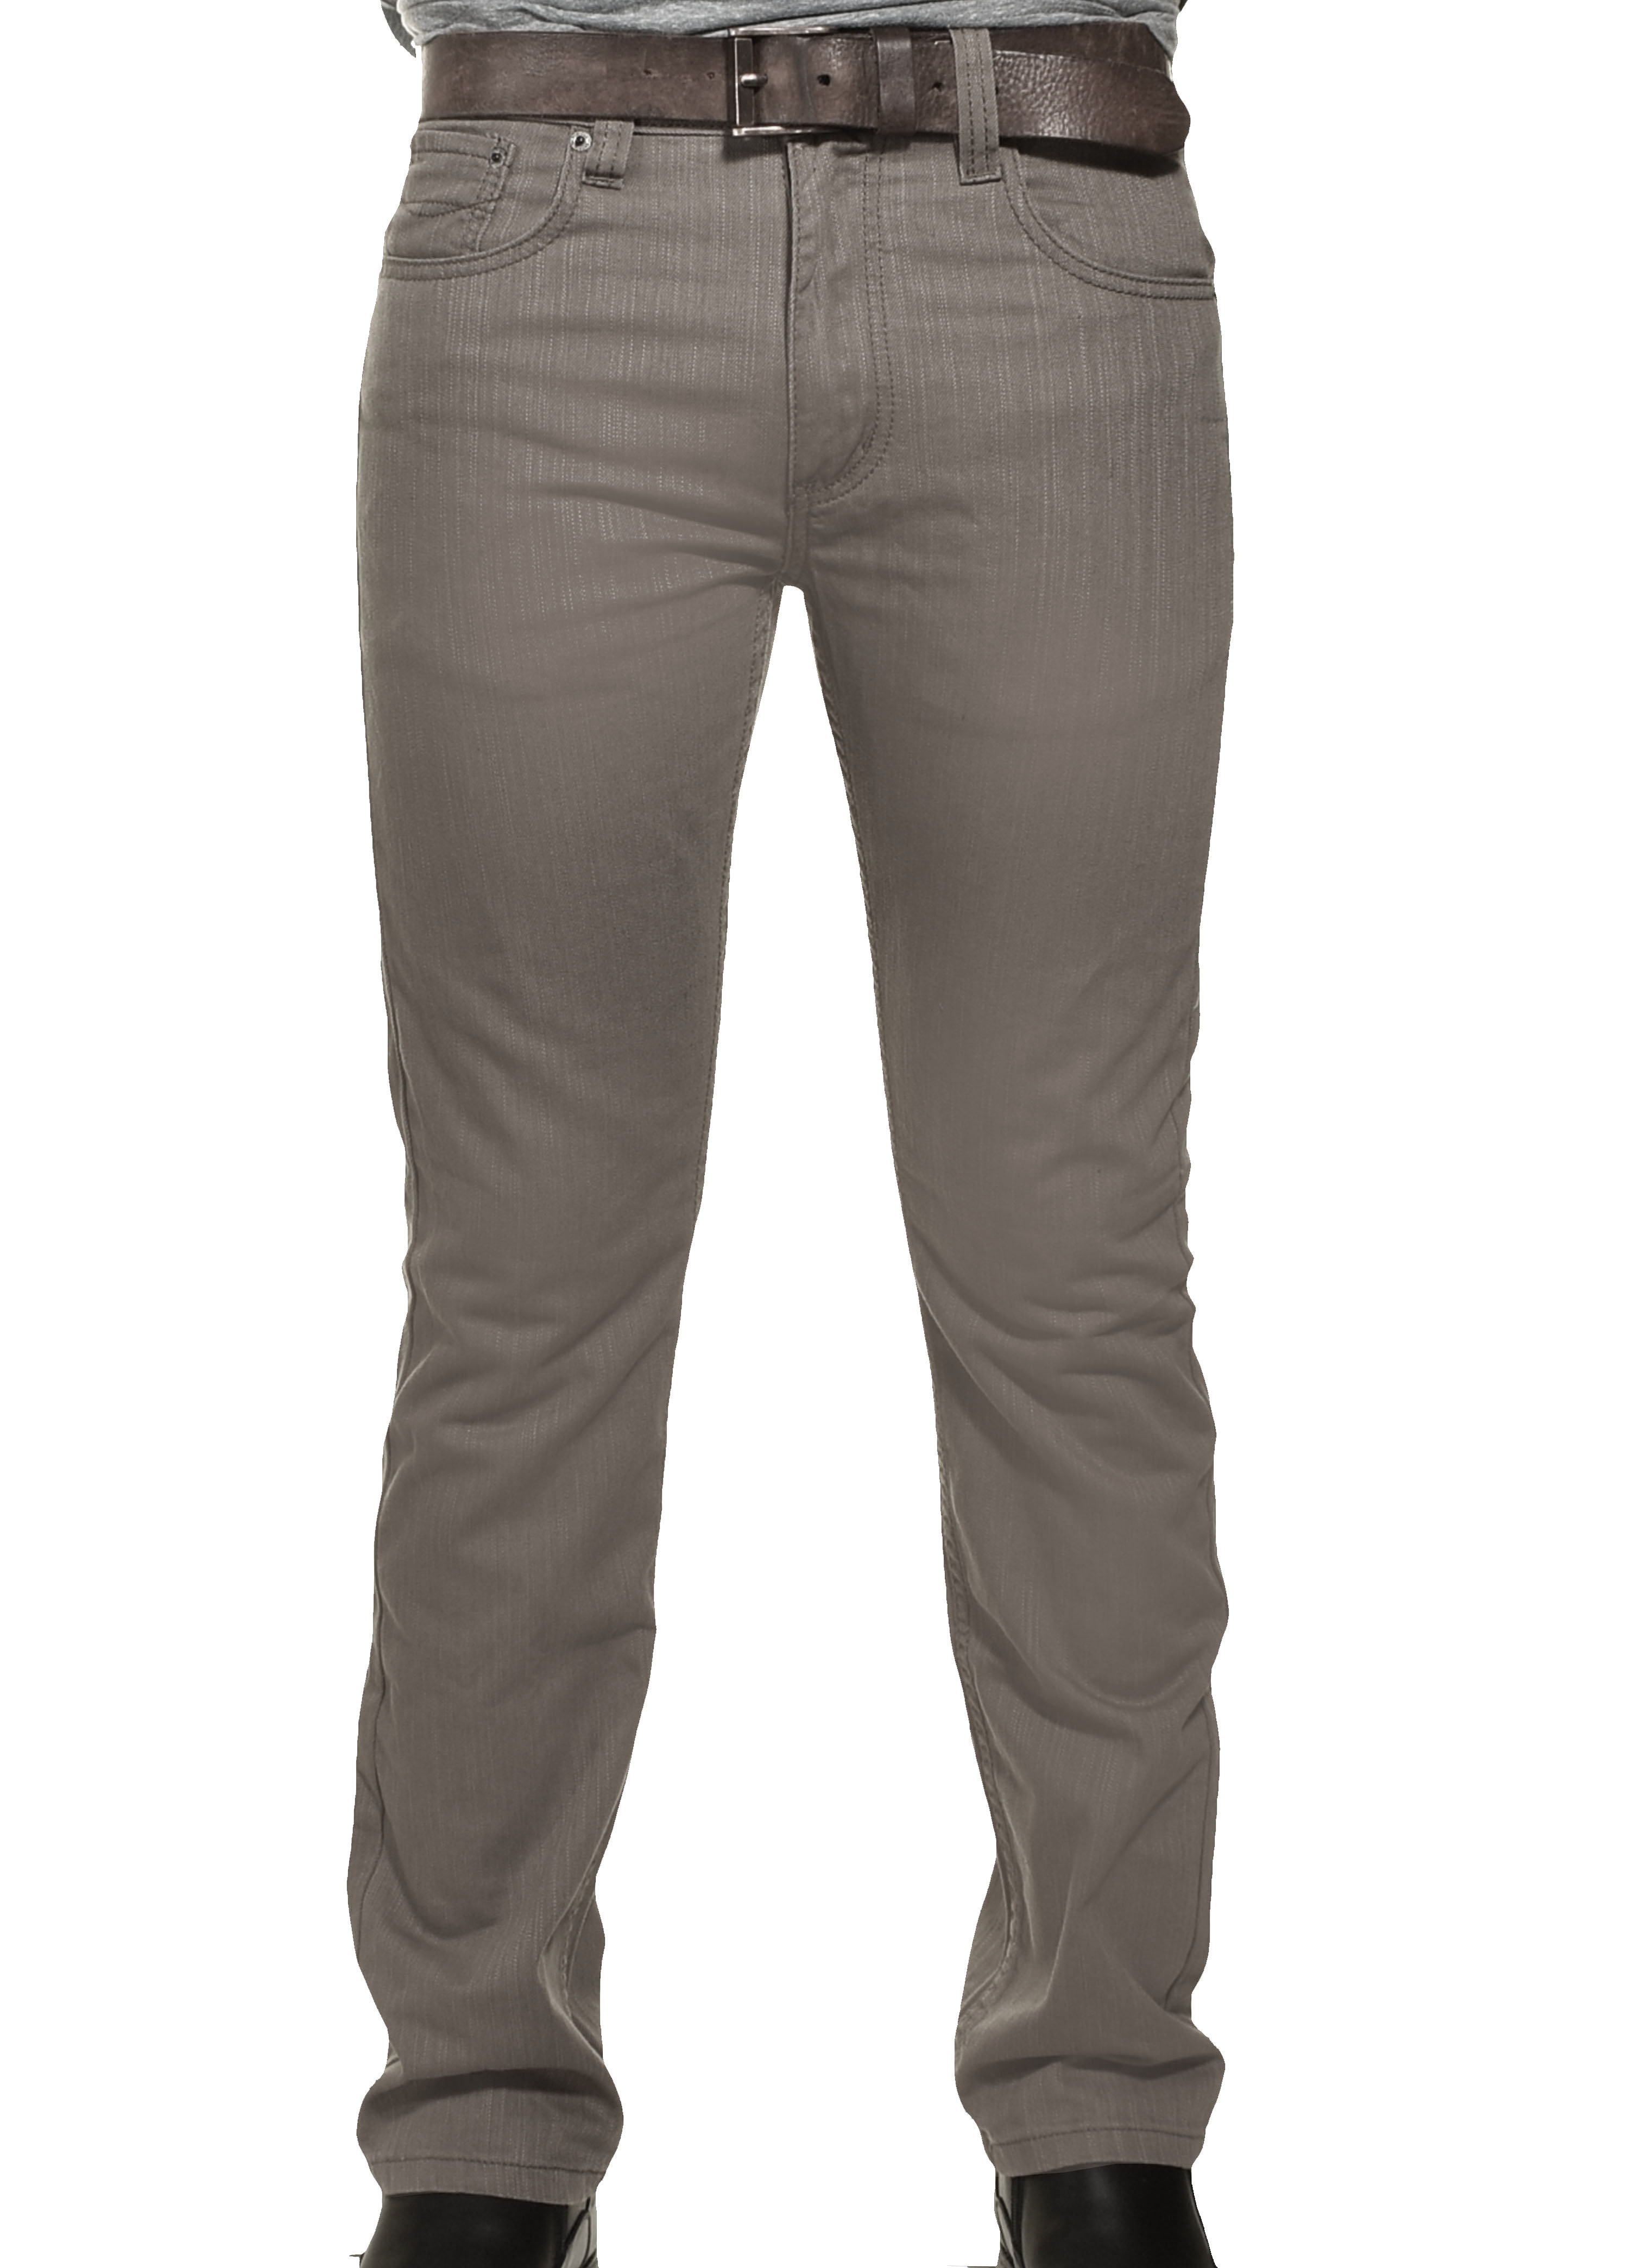 Victorious Mens DL991 Slim Fit Premium Jeans (Gray, 28X30)